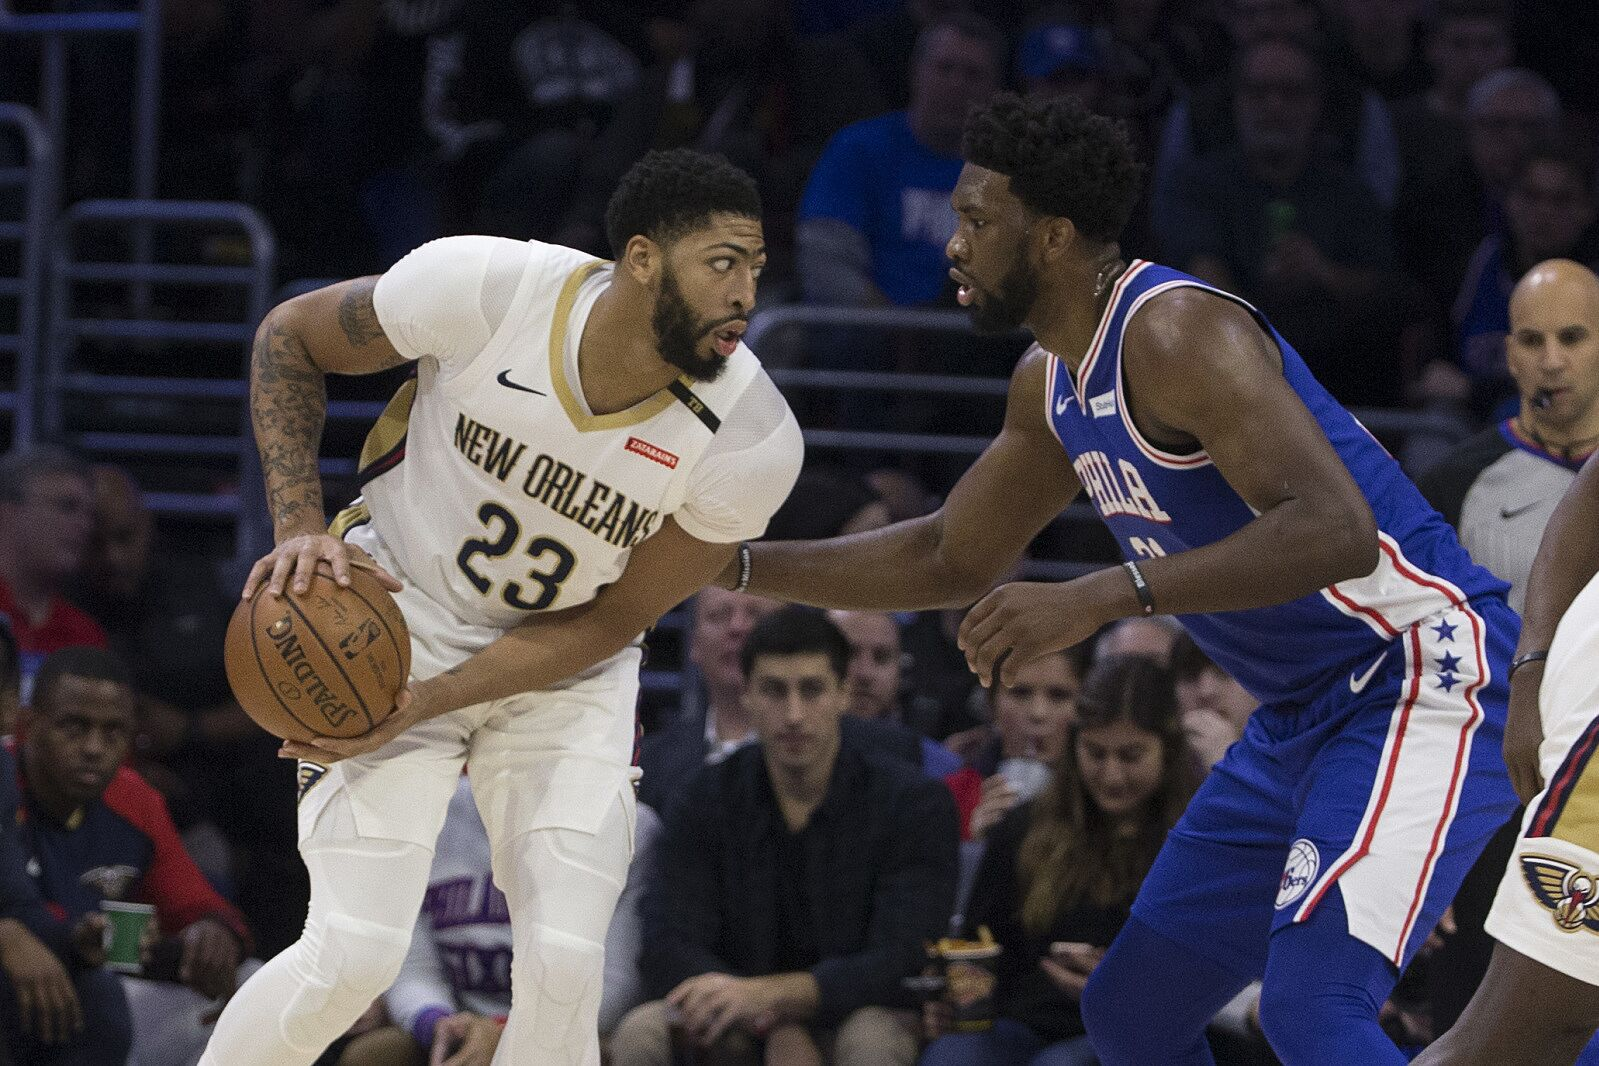 Los Angeles Lakers: Where does Anthony Davis rank among Top-5 bigs?